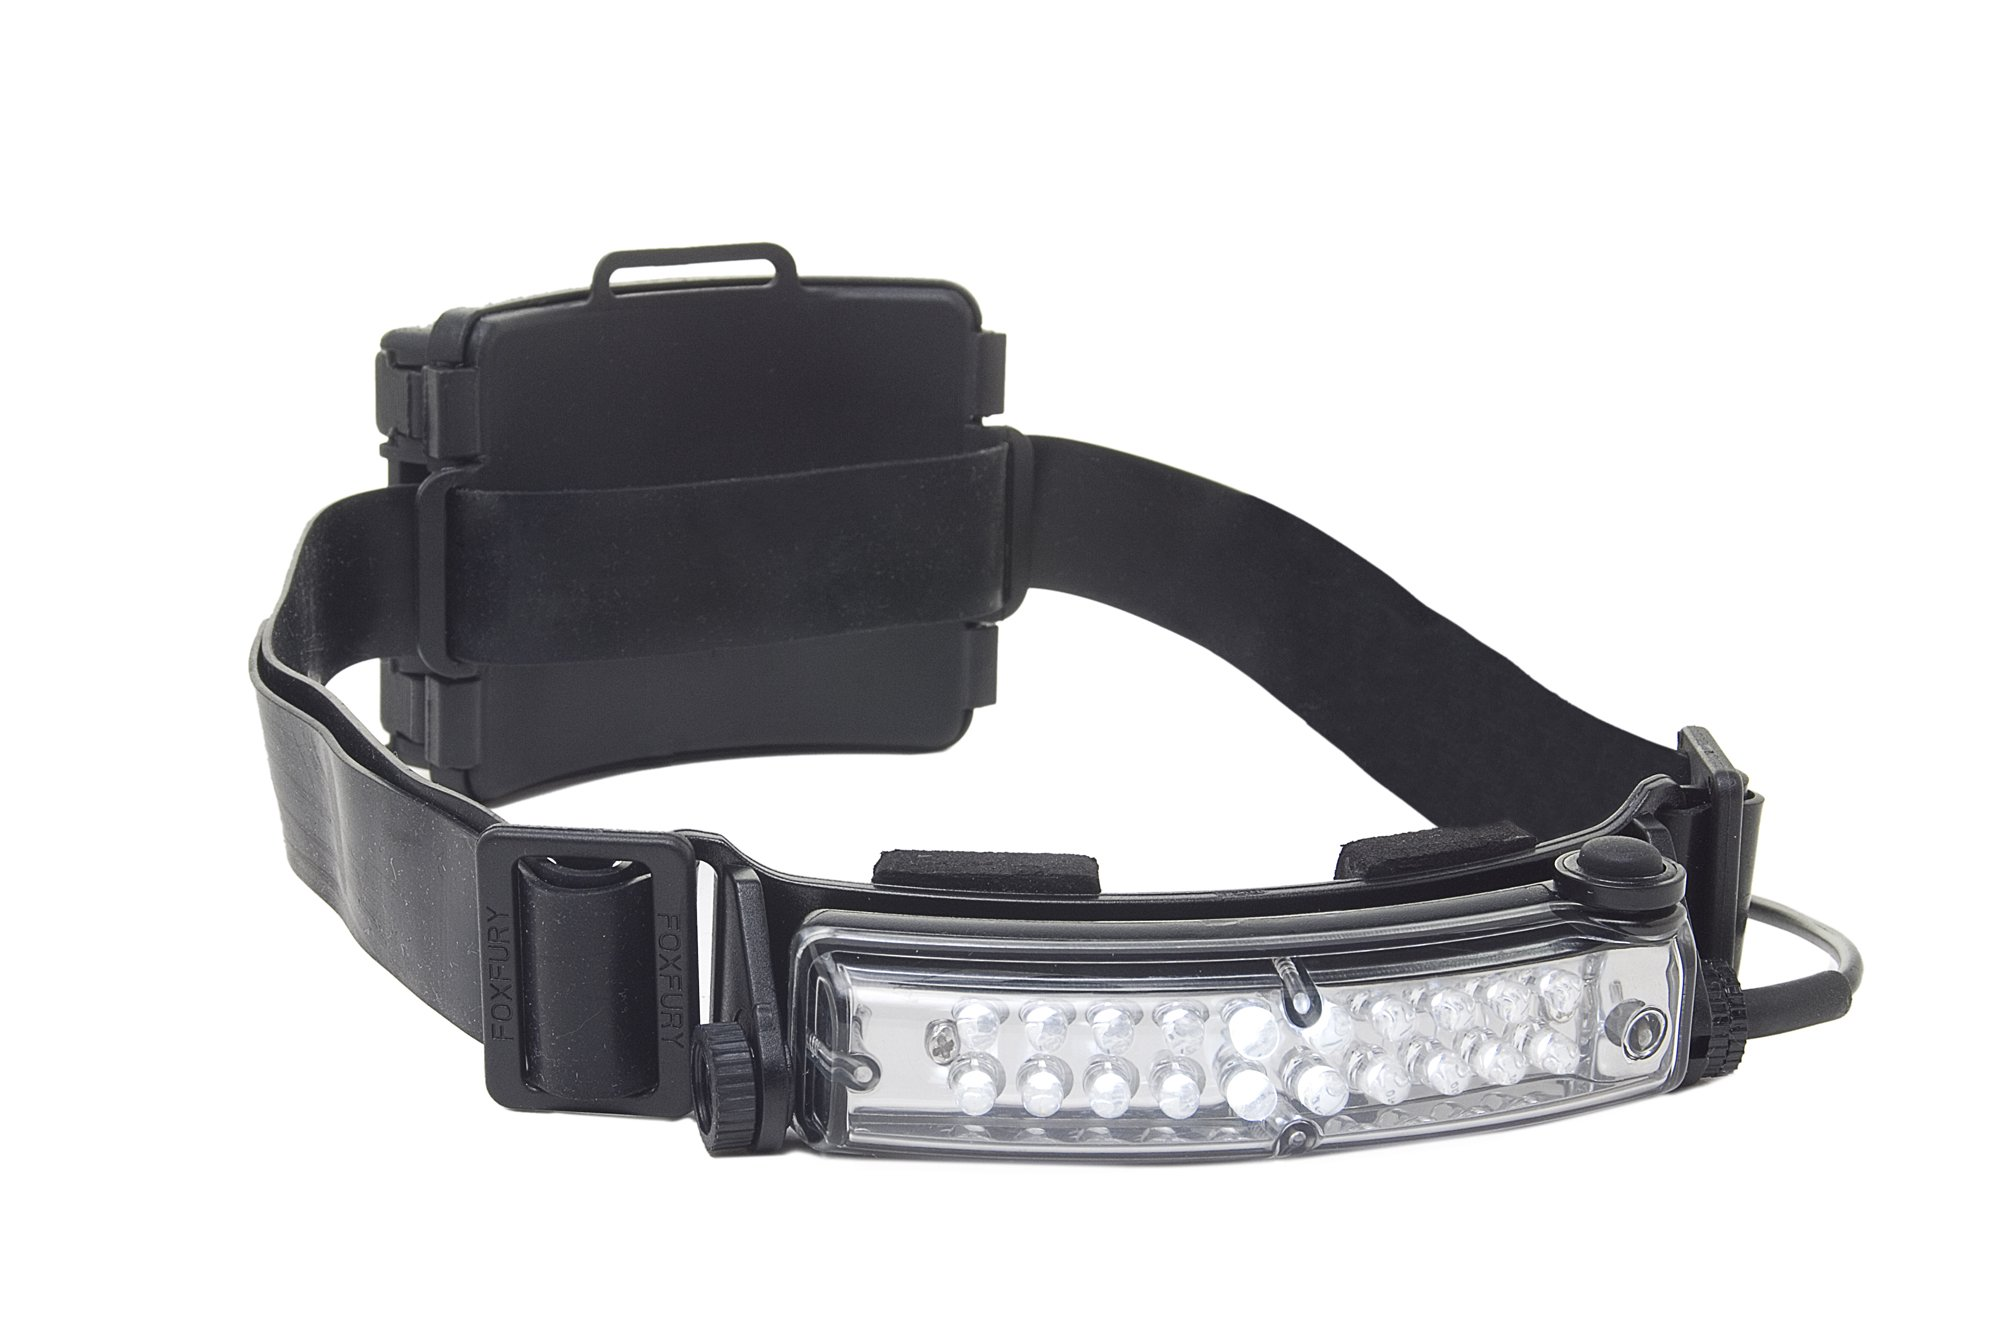 FoxFury 420-009S Command 20 Tasker S LED Helmet Light with Silicone and Elastic Strap, 72 Lumens